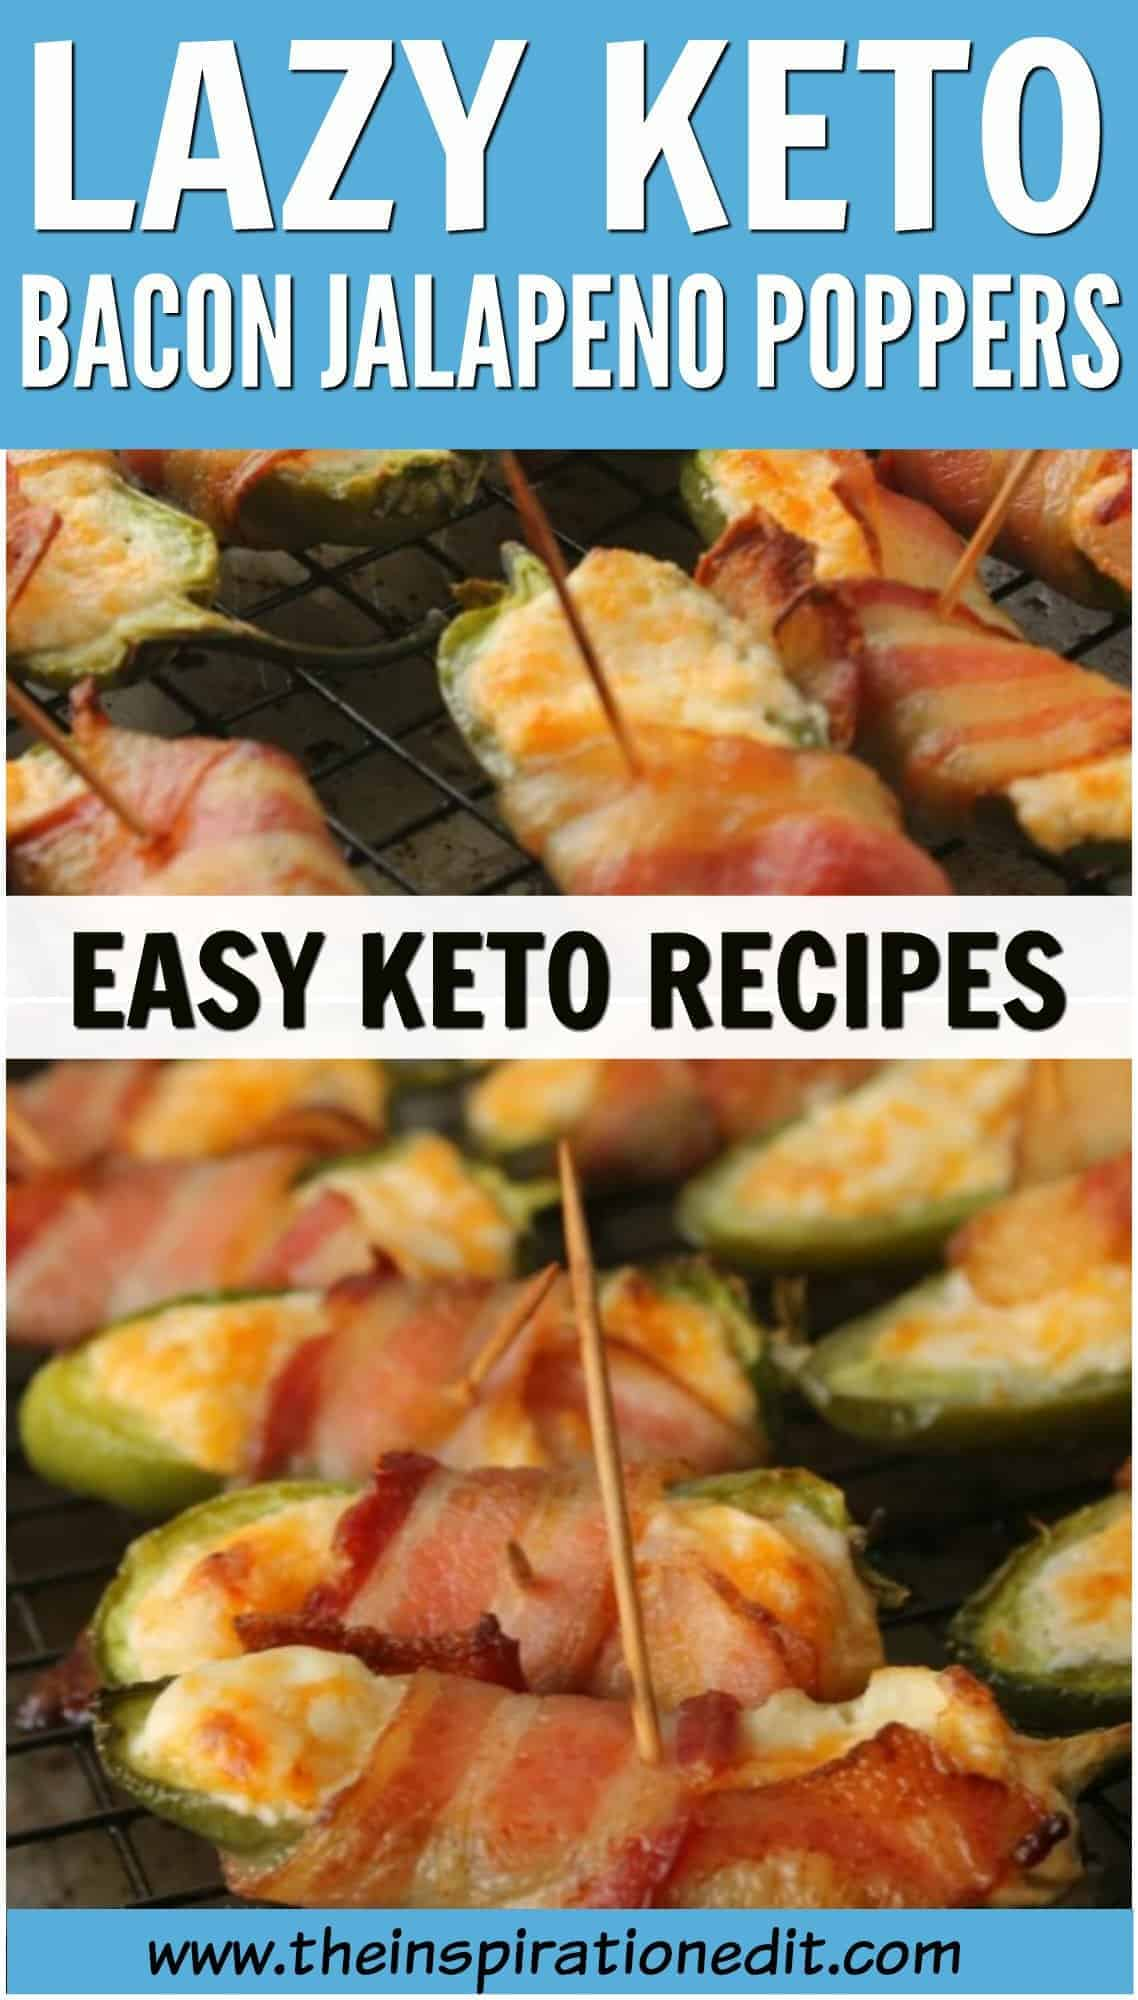 lazy keto recipe